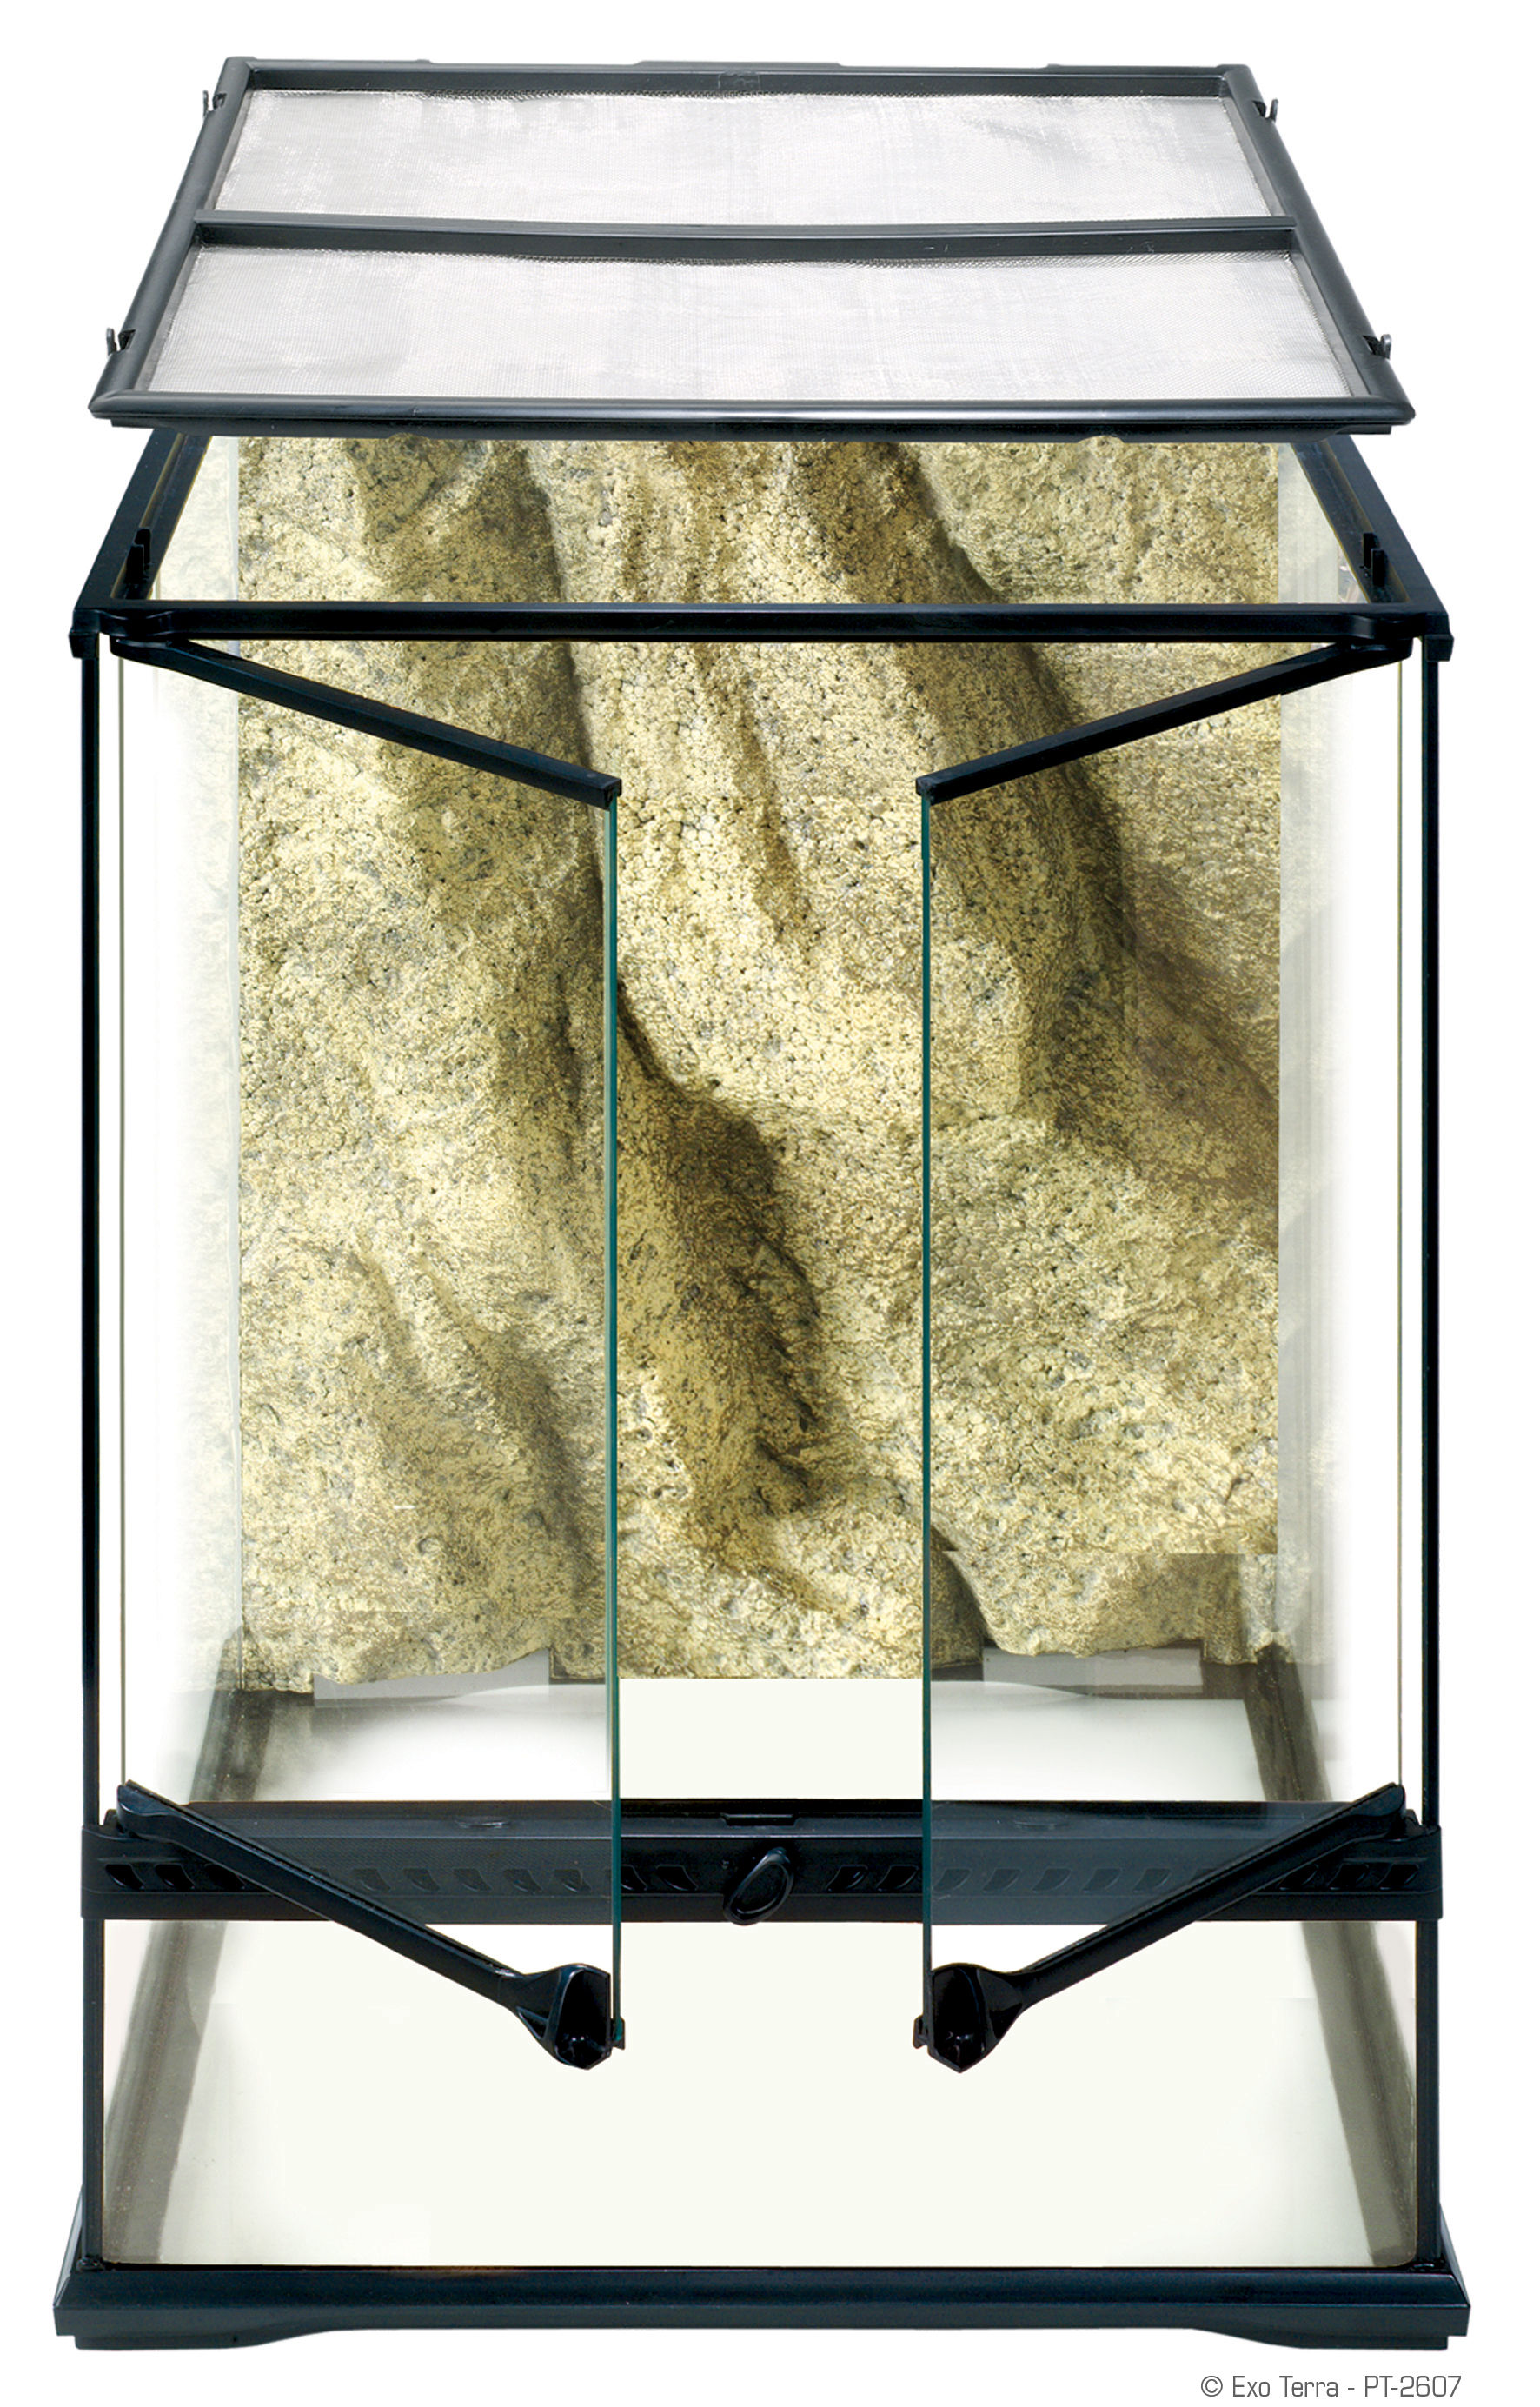 Exo Terra Natural Terrarium Small Advanced Reptile Habitat